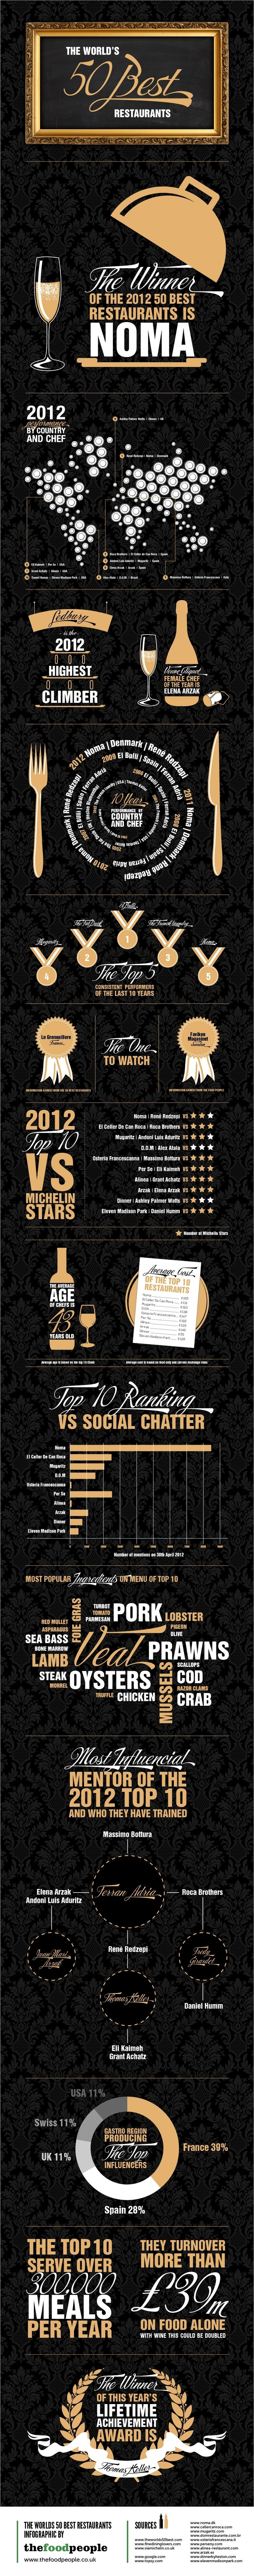 If your interested in #theworlds50best restaurants then this Infographic is for you